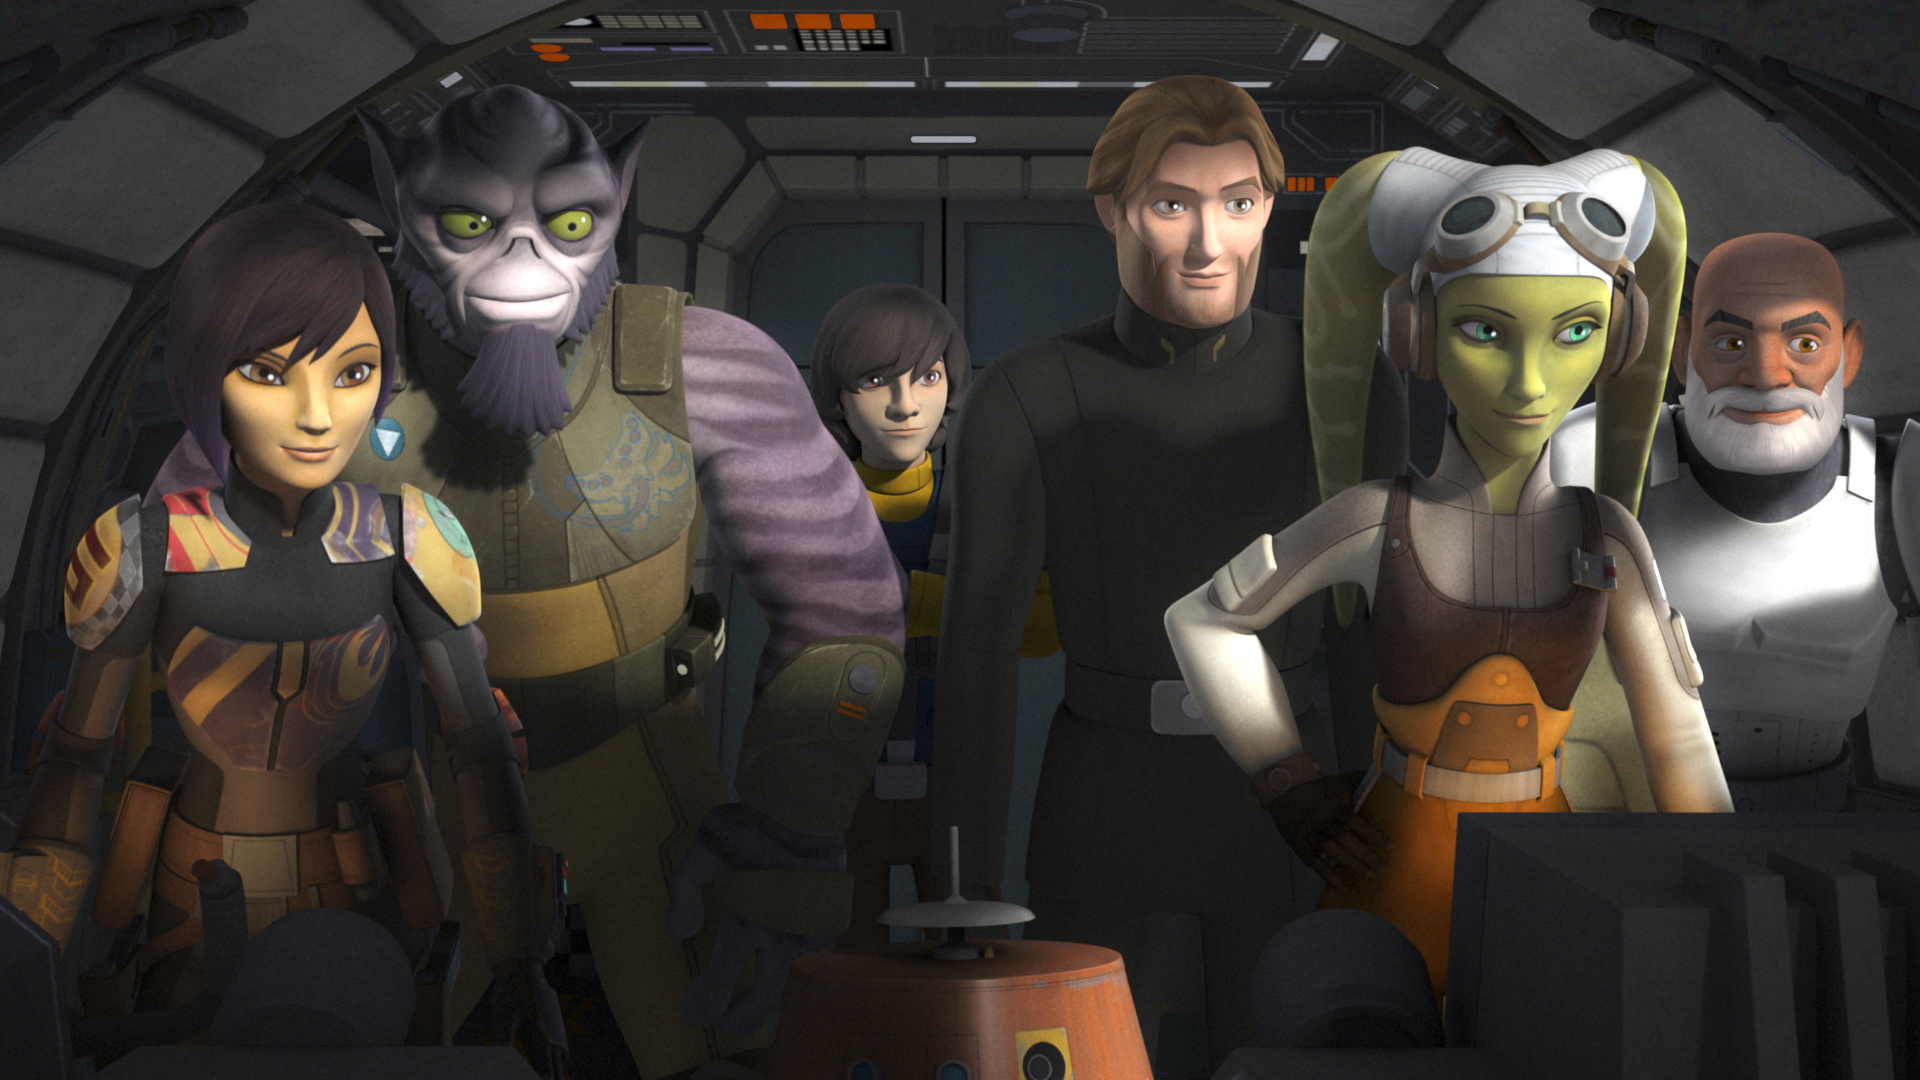 Star Wars Rebels Finale That Surprise Ending Cameo And